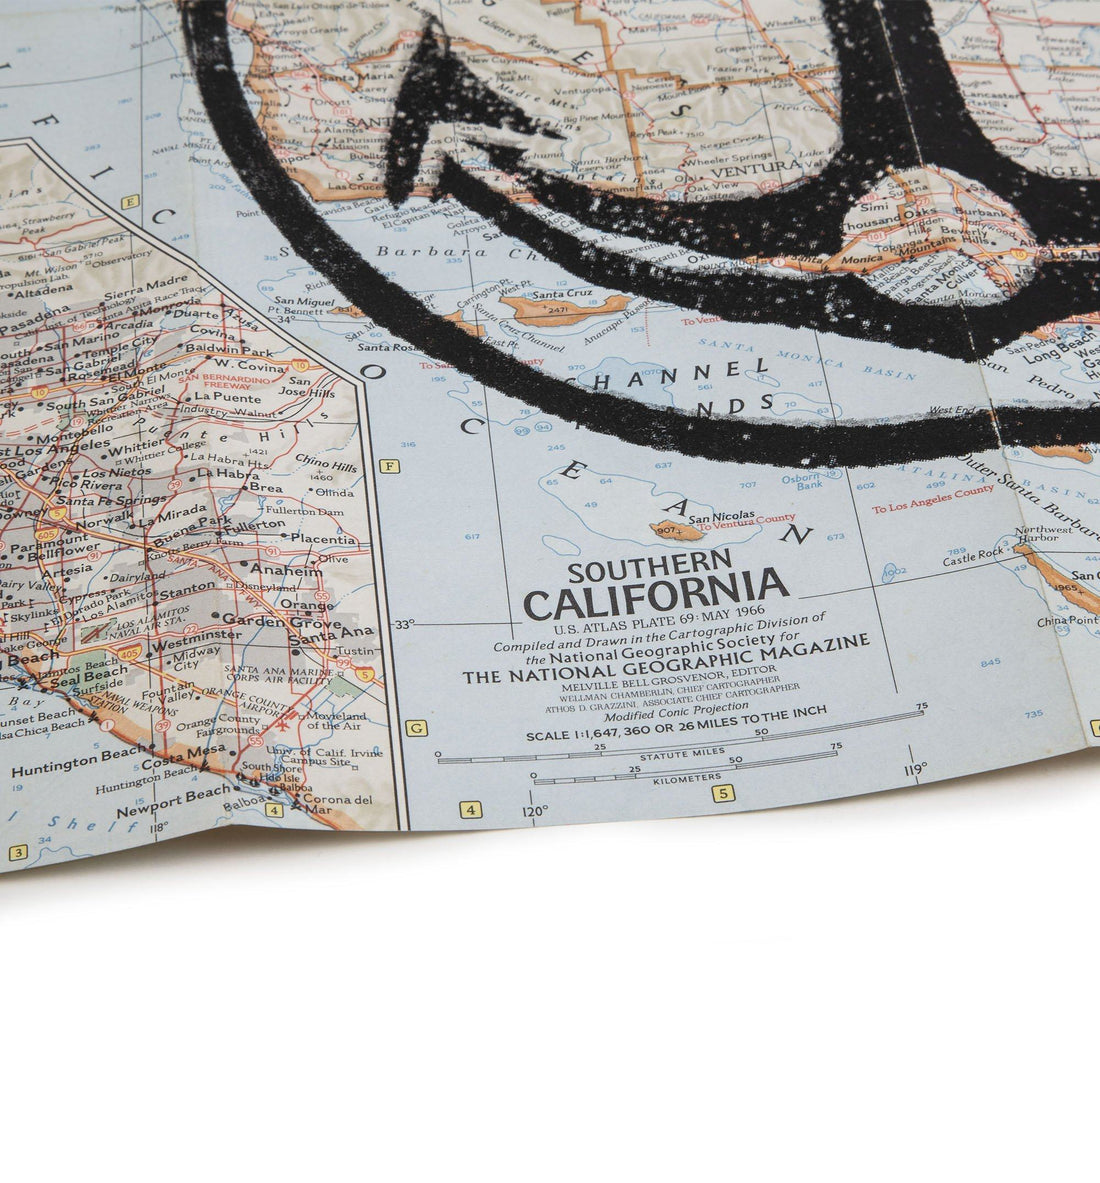 "Iron & Resin Vintage Map Poster - Southern California - 15"" x 20"" - Art/Prints - Iron and Resin"